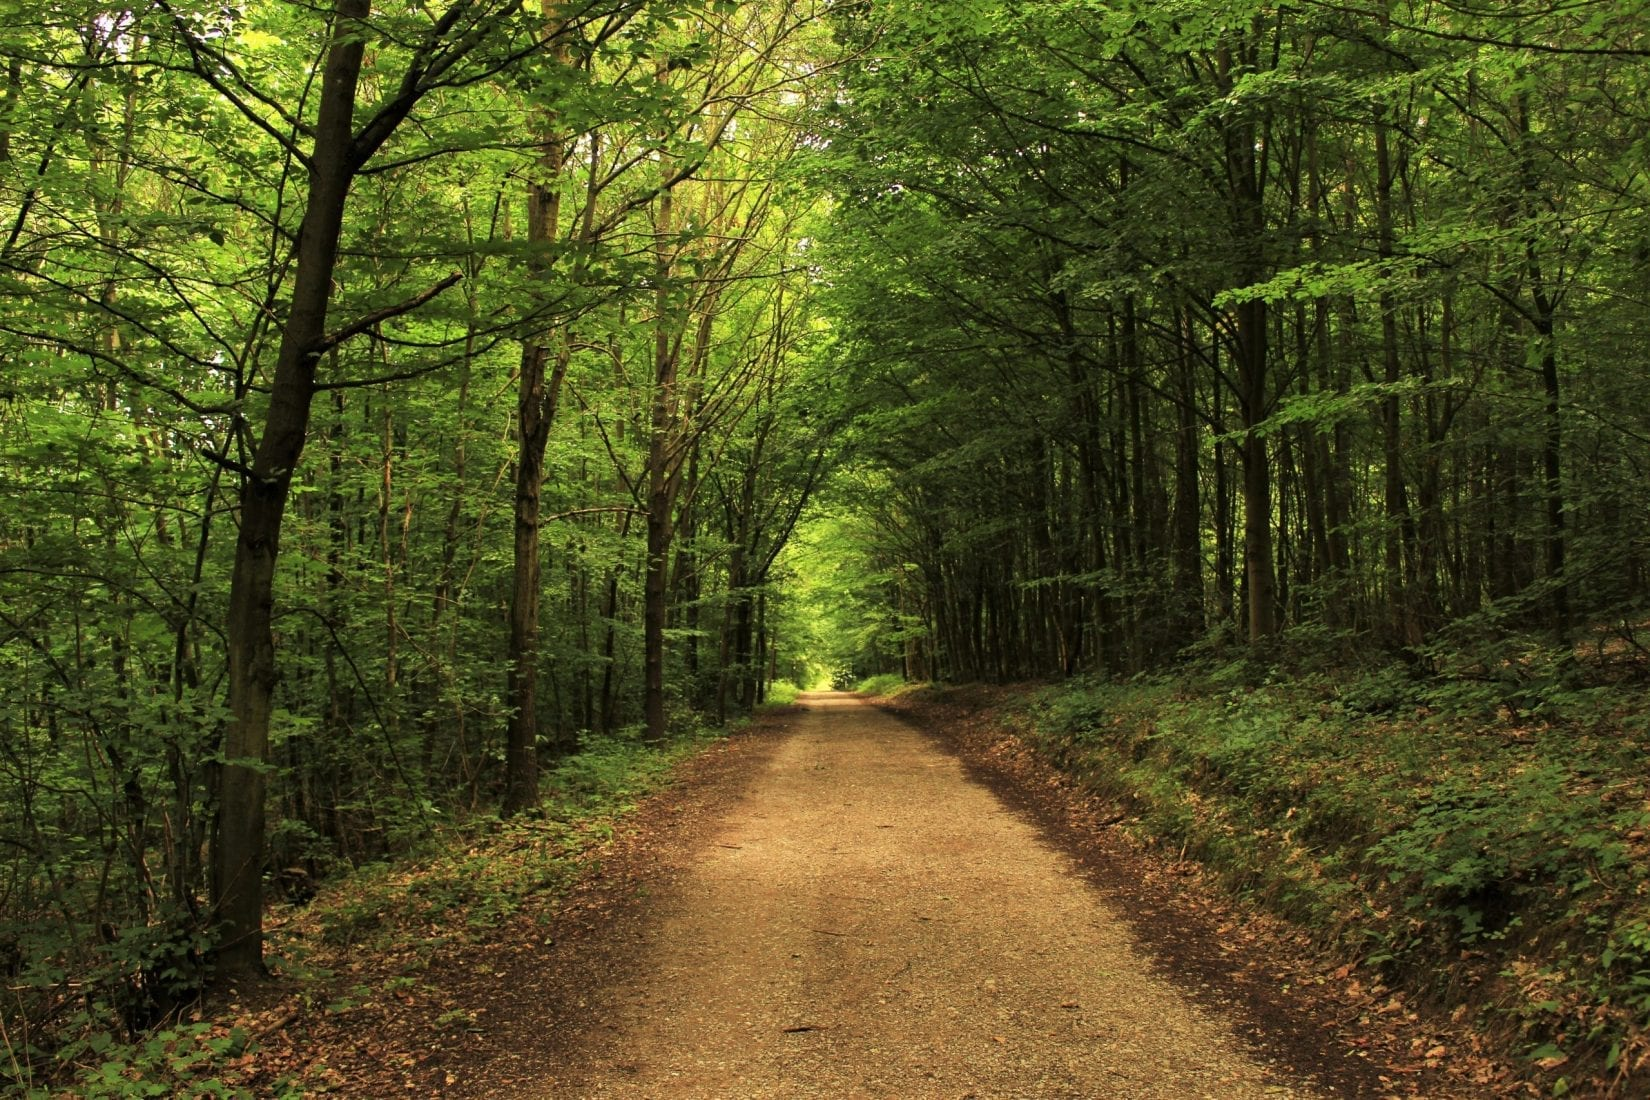 brown-dirt-path-in-green-forest-walk-and-talk-therapy-kelowna-british-columbia-alive-counselling-barb-egan